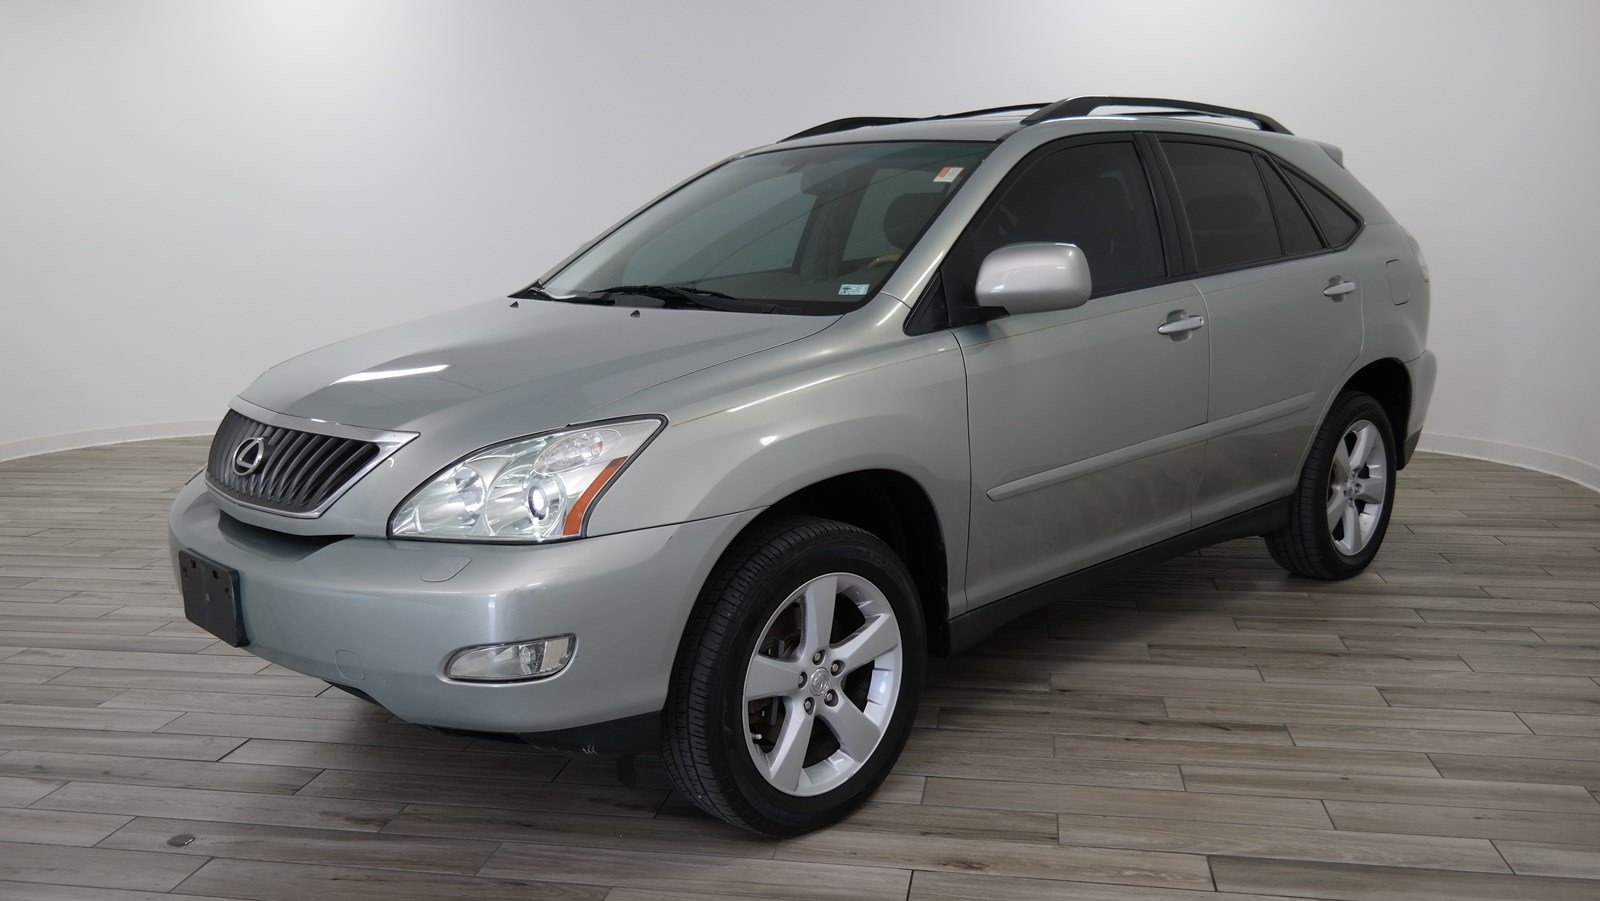 2008 LEXUS RX 350 Base SUV In St. Louis, MO